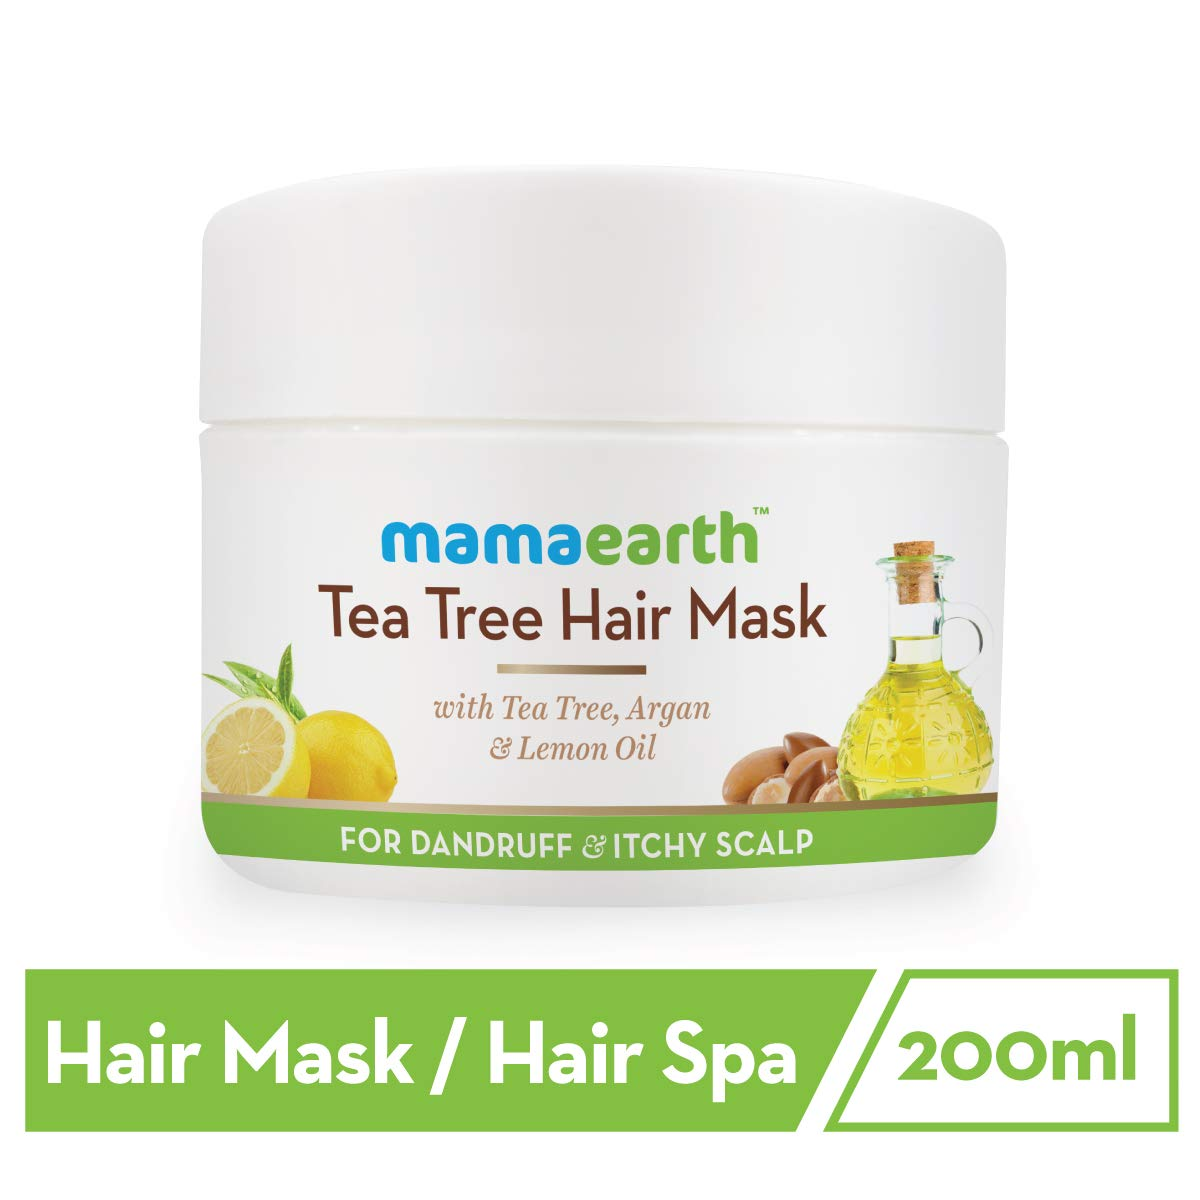 Mamaearth Anti Dandruff Tea Tree Hair Mask : Best hair spa product